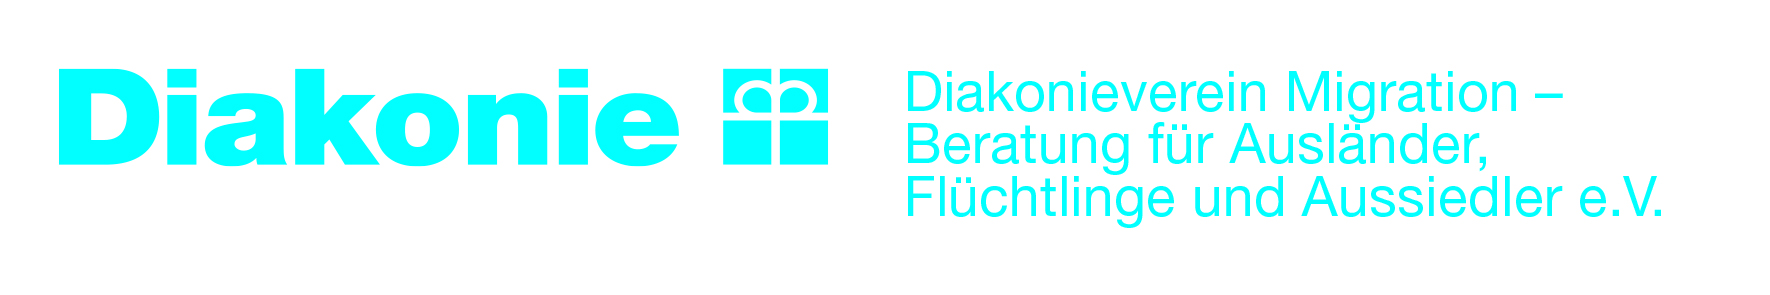 Logo: Diakonieverein Migration e. V.